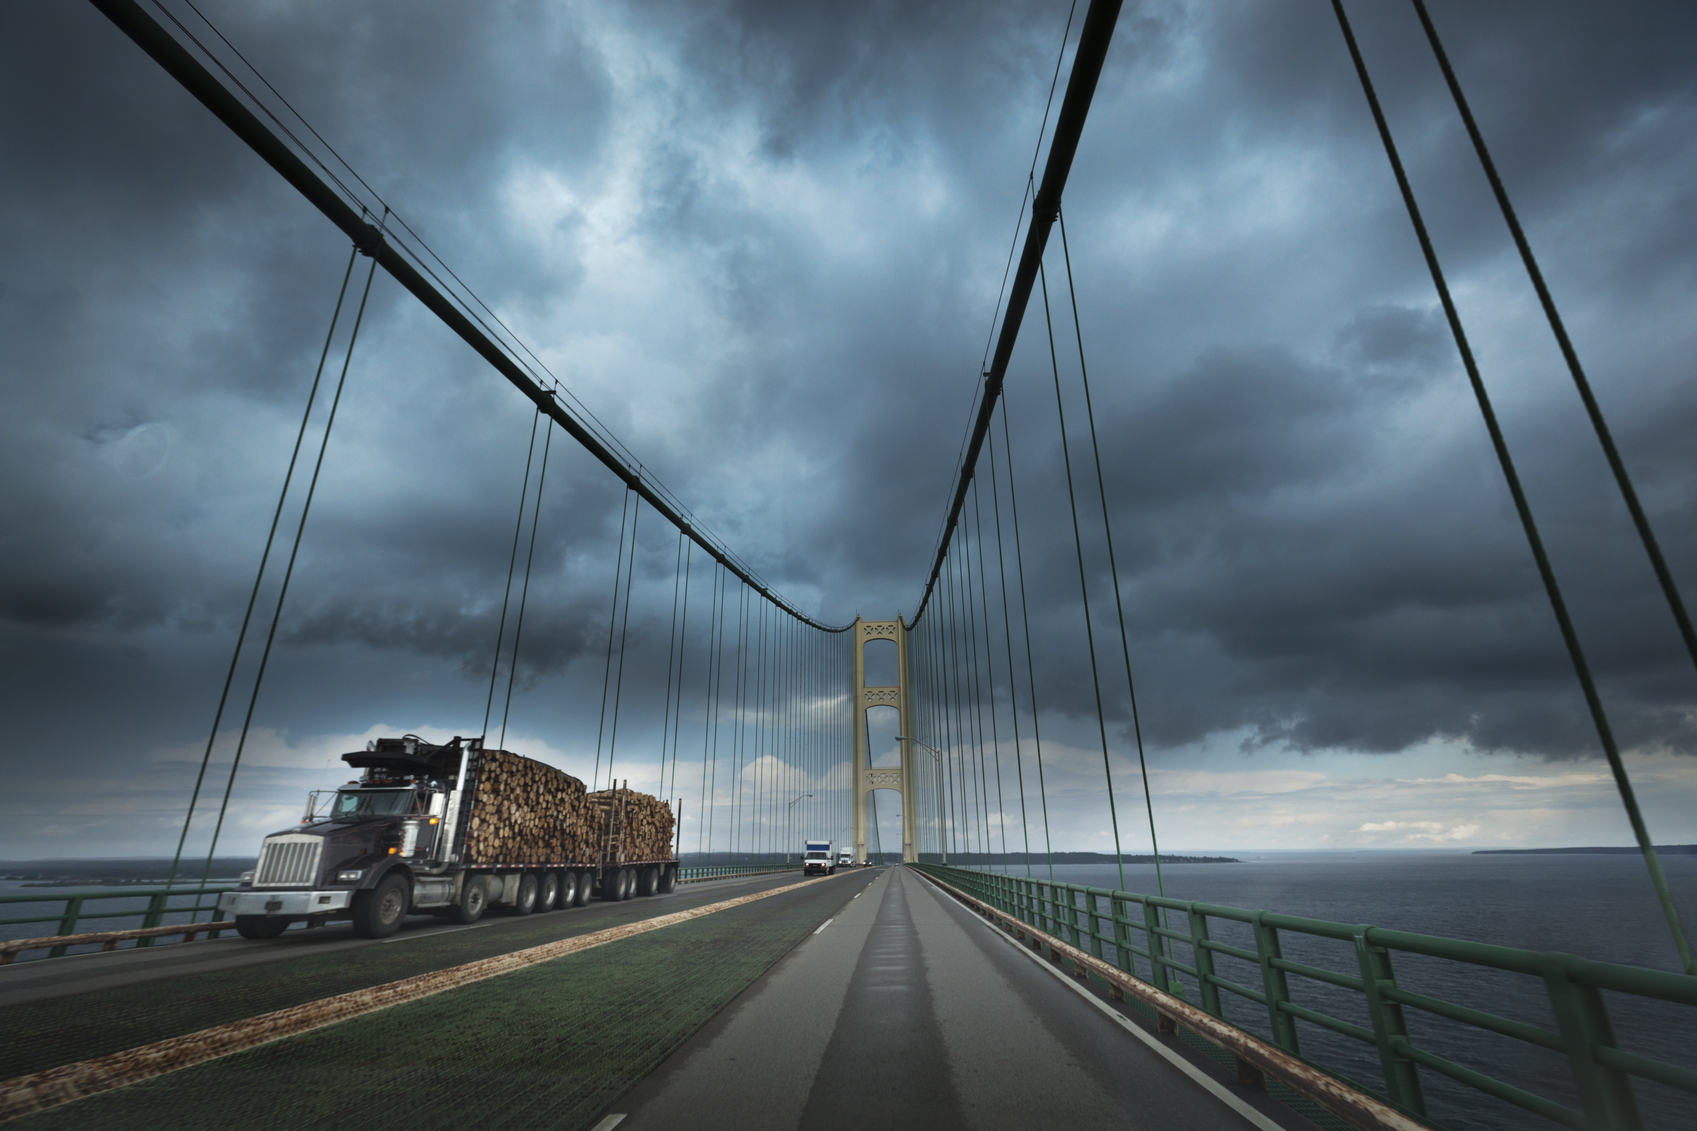 Commercial truck drivers should pay extra caution to Hurricane Matthew's high winds, especially on bridges and overpasses.